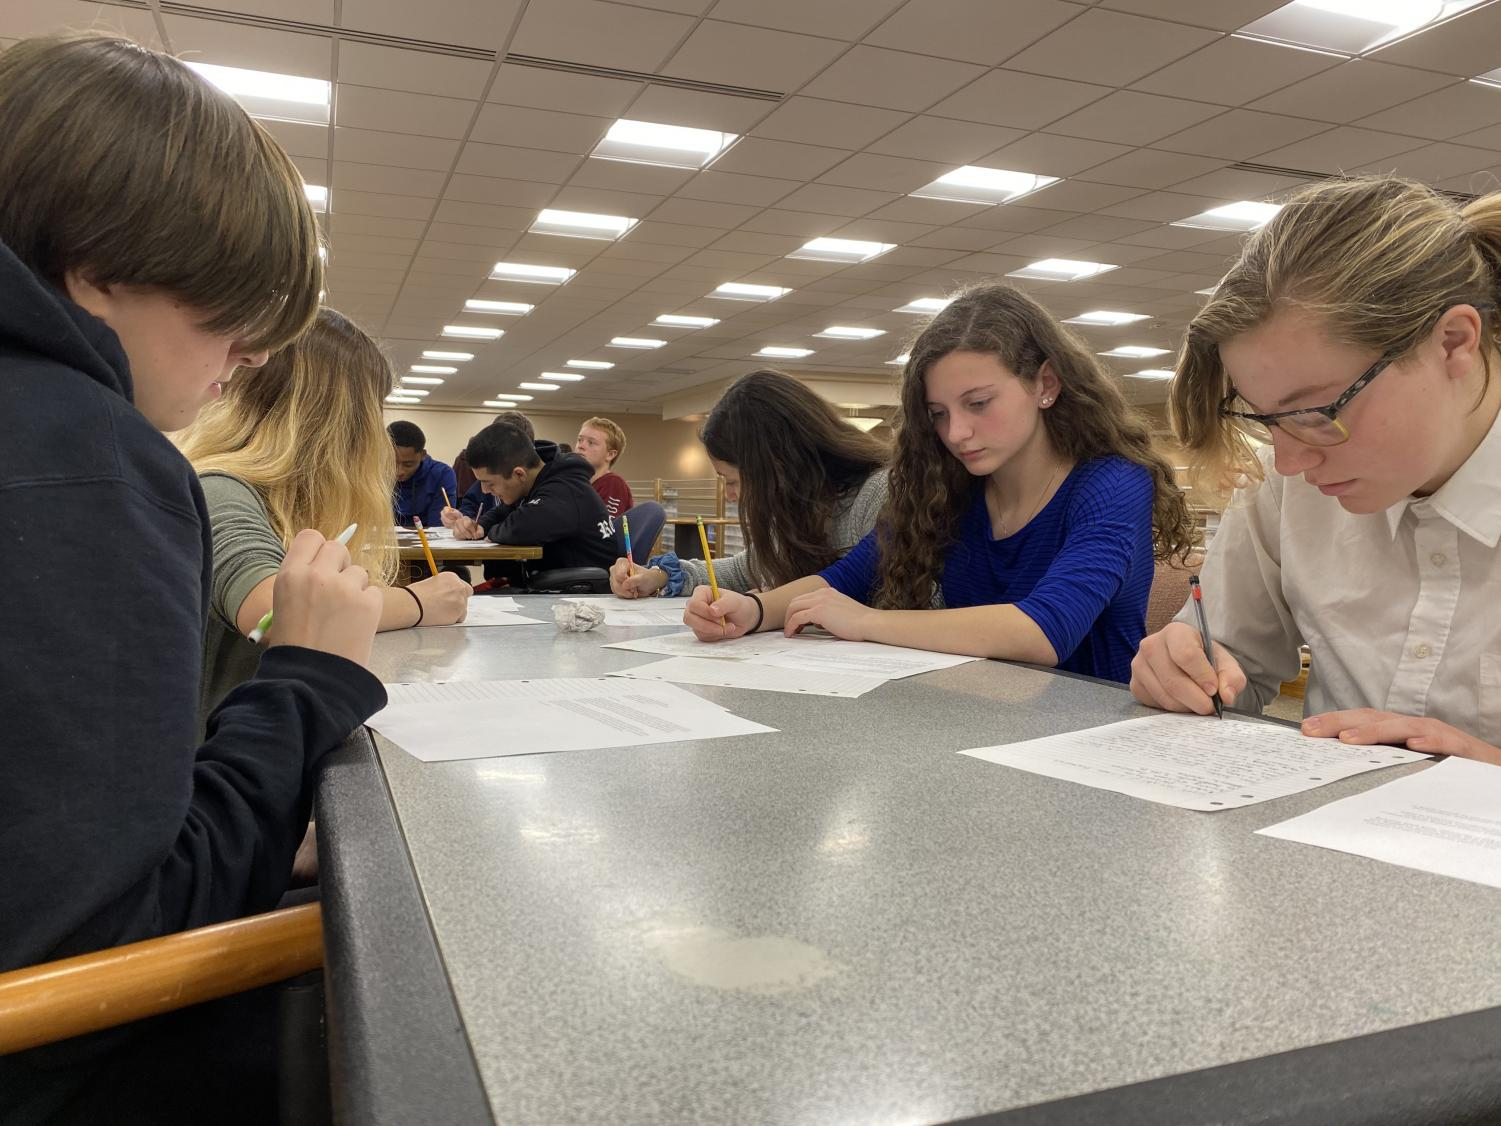 Students write letters for the Write for Rights Campaign at the Human Rights Club library showcase Dec. 10 in recognition of International Human Rights Day. Pictured are (left to right) sophomore Chelsea Sawyer, junior Ashley Wyckoff, and freshmen Tess Errickson, Michelle Perna, and Jennifer Umana. The international Write for Rights Campaign, which began in 2010, sends millions of letters each December to support those whose rights have been violated and to pressure governments into reforming oppressive laws.